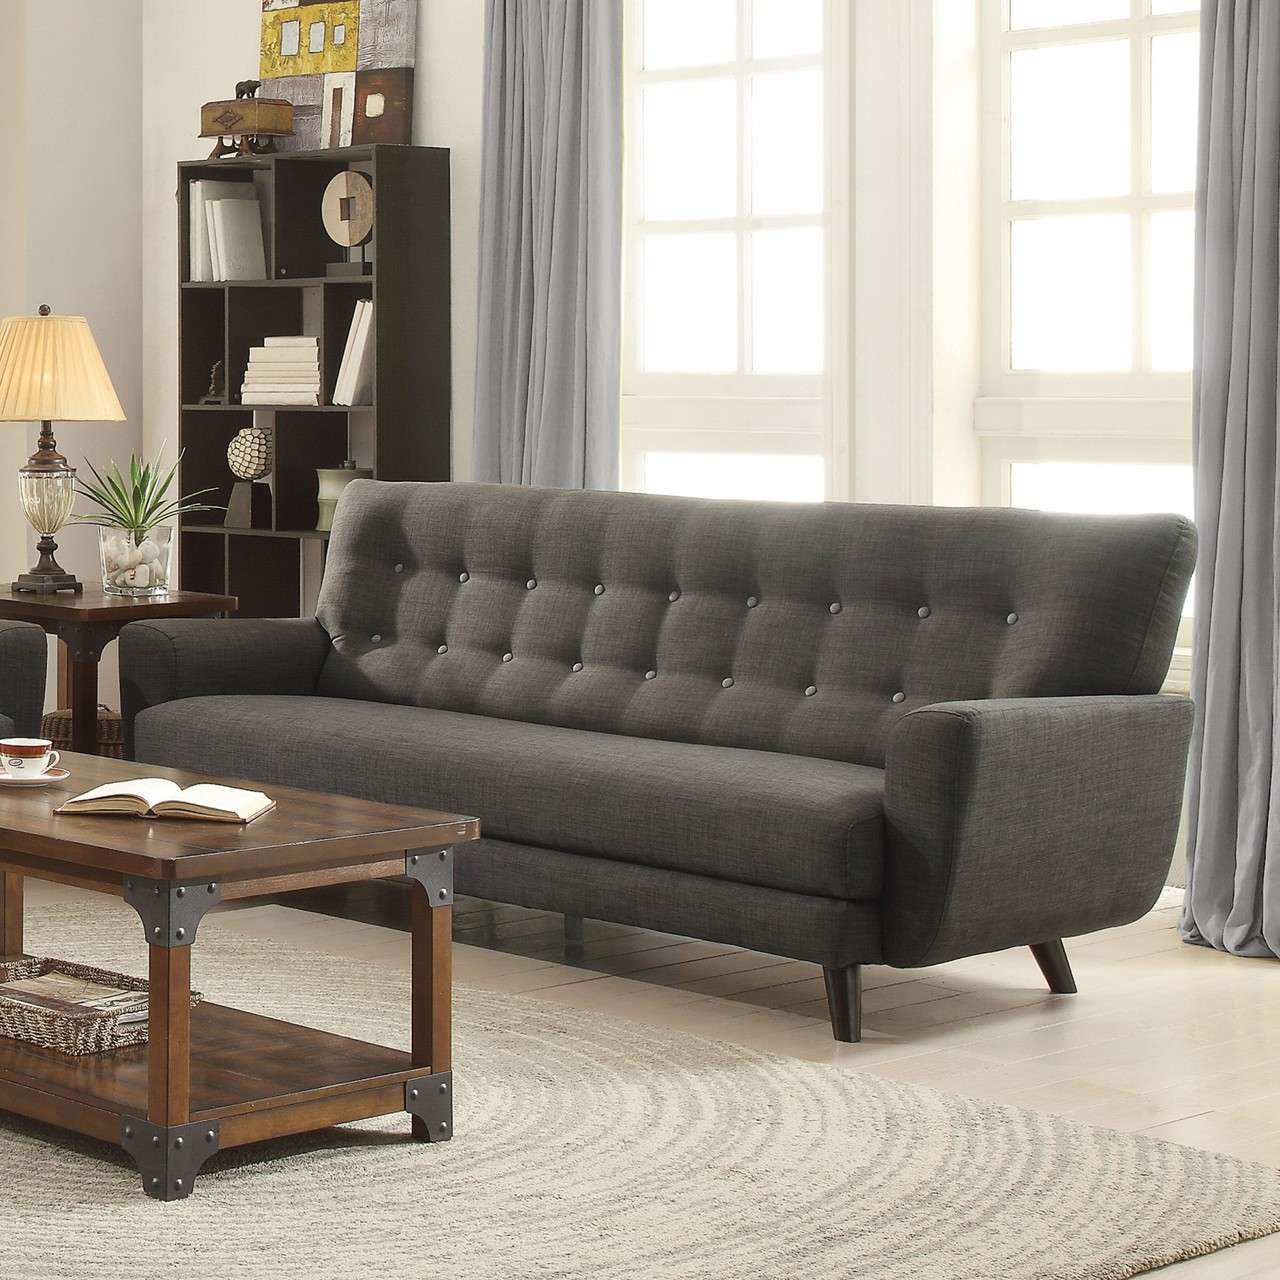 Coaster Maguire Contemporary Tufted Linen Sofa in Charcoal ...